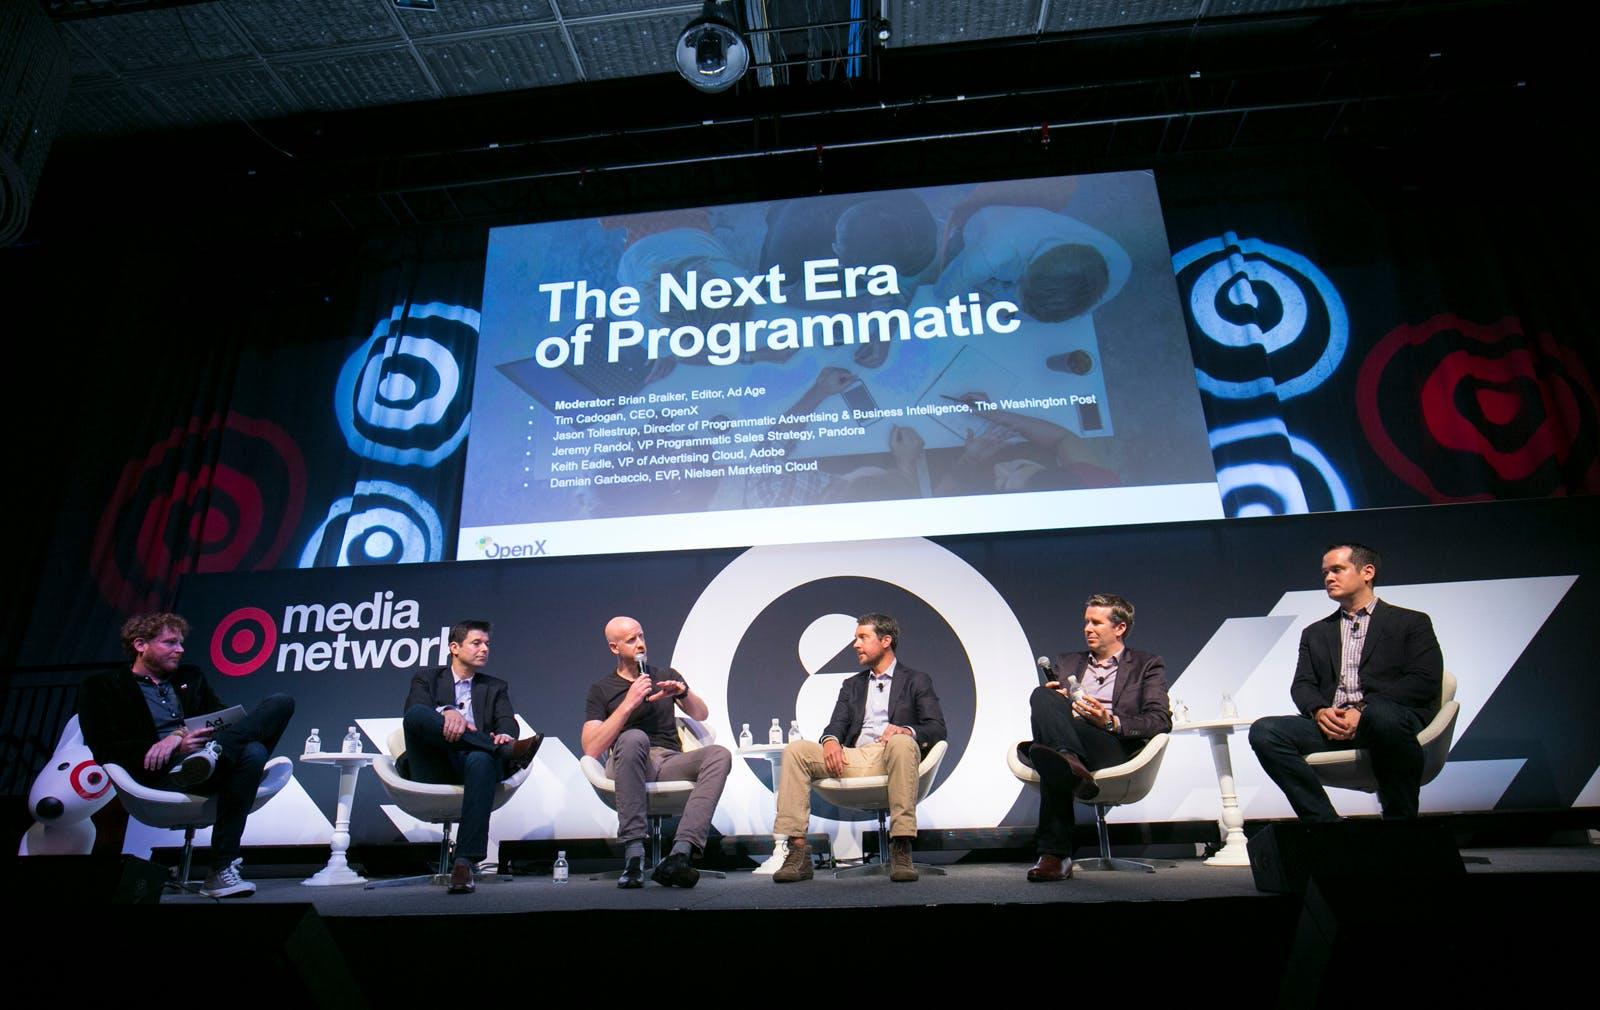 OX AdvertisingWeek Images8 - AdWeek New York 2017: What's Next for Ad Tech and Programmatic?